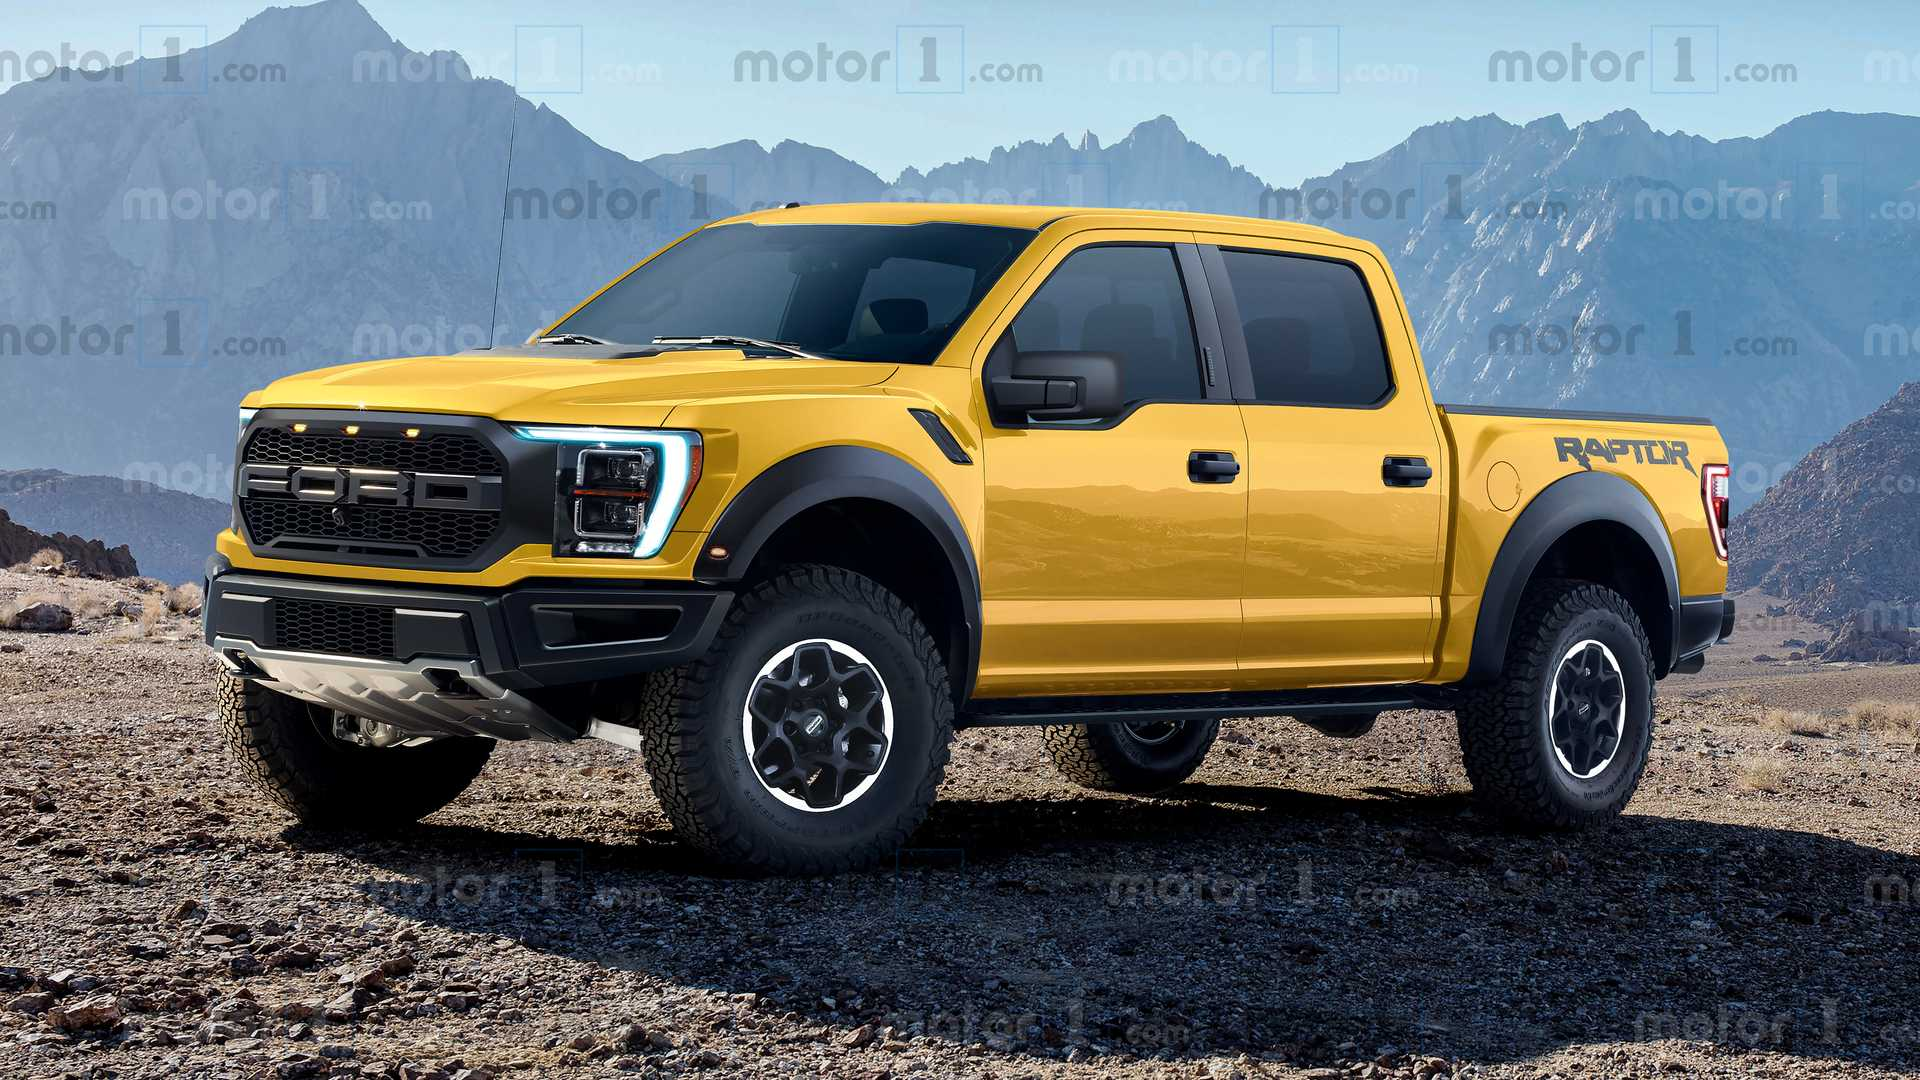 Raptor Rivals: The New F-150 Will Bring A New Version Of Ford's Off-Roader, But Who Else is Showing Up?